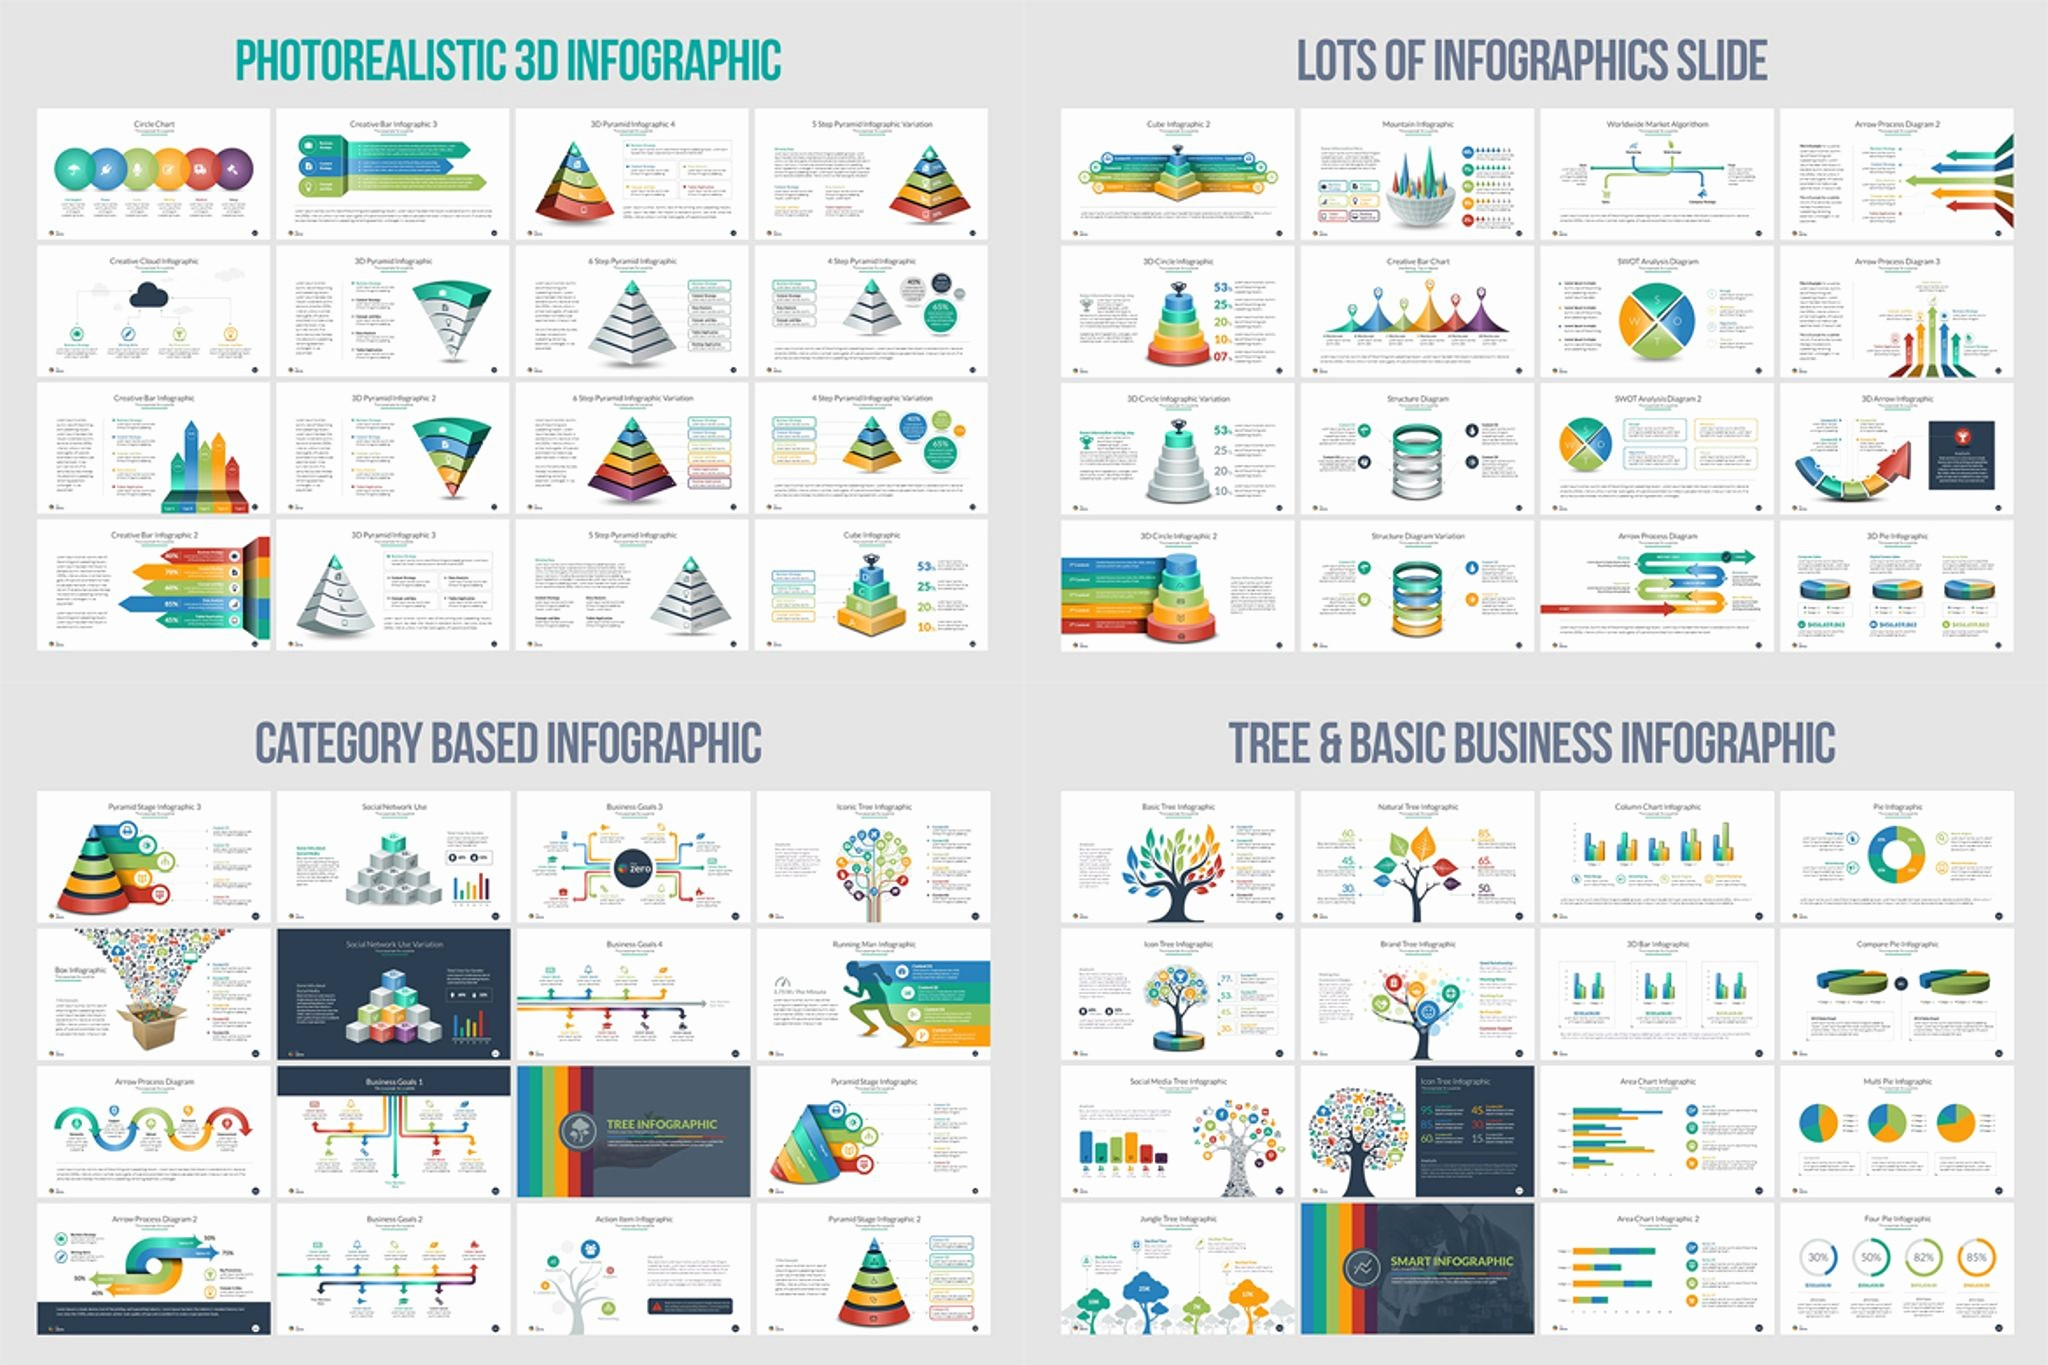 Ppt Templates for Business Presentation Inspirational Business Infographic Presentation Powerpoint Template